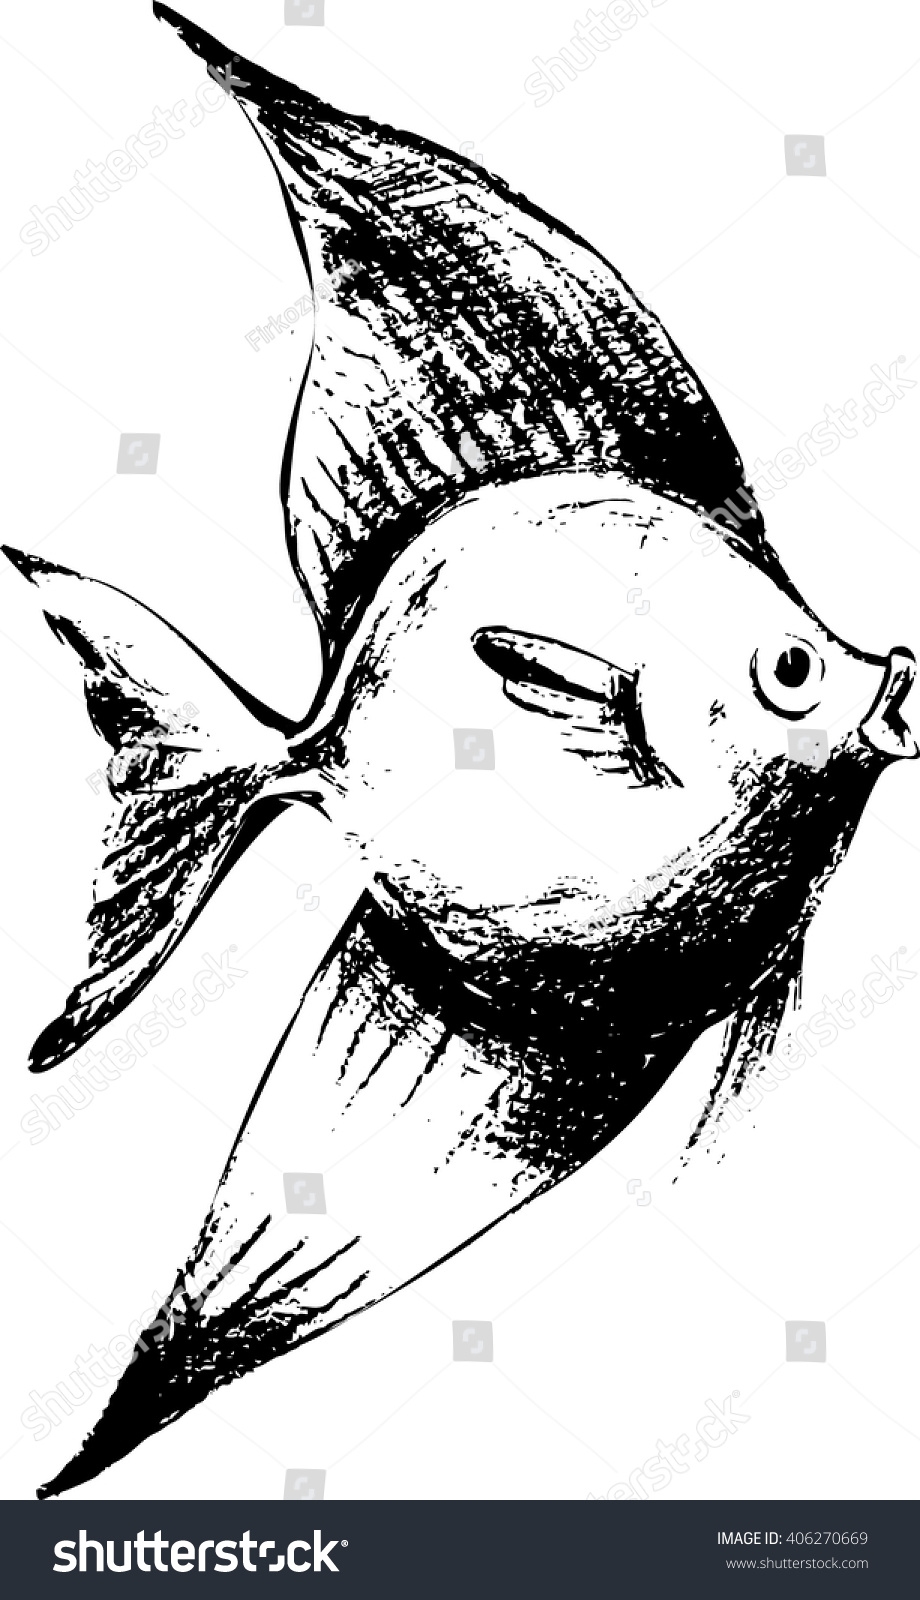 Hand draw fish in black and white style fish drawing sketch style vector